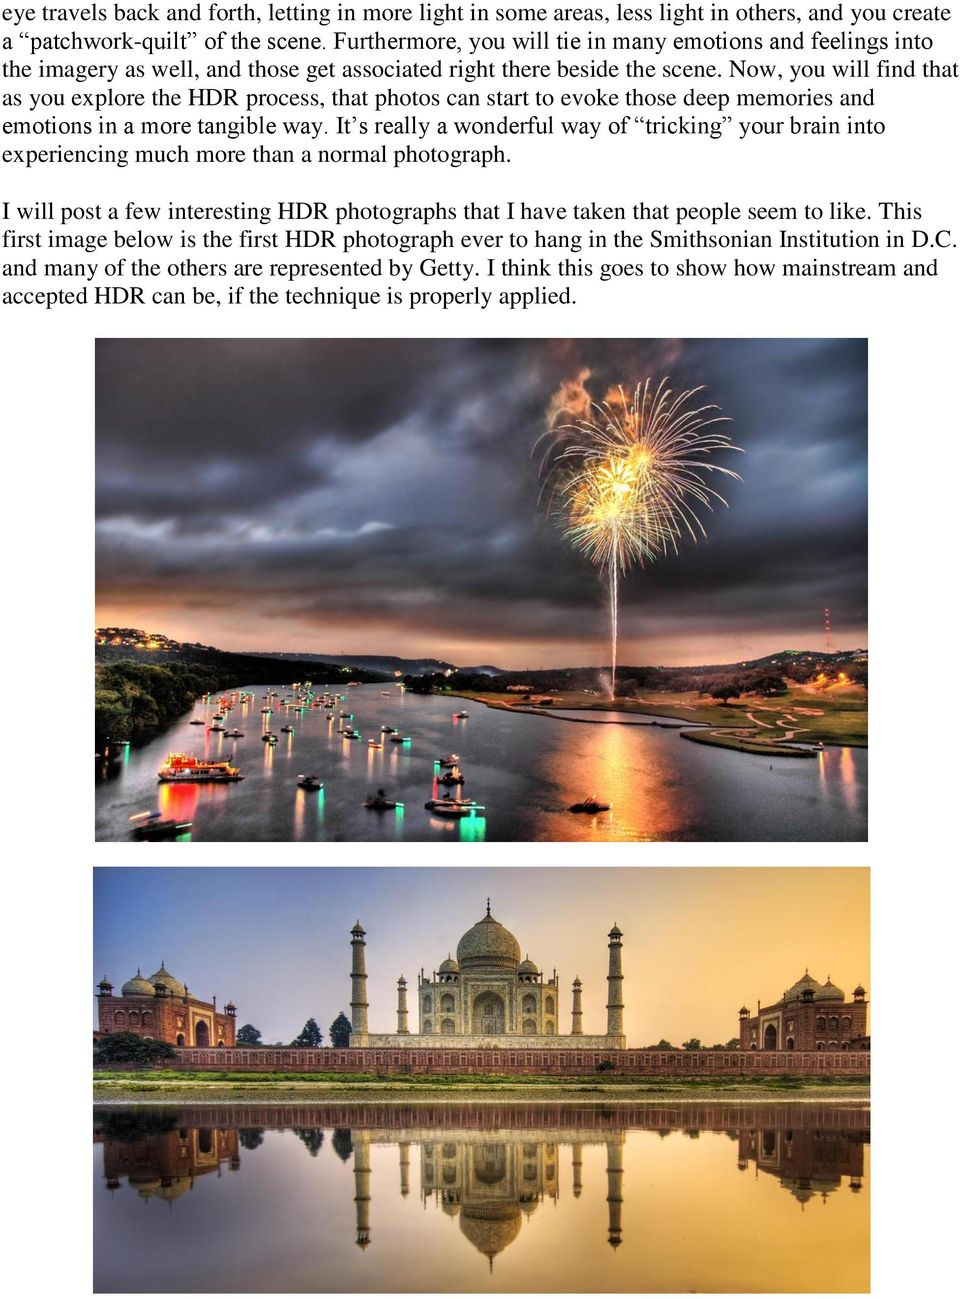 Now, you will find that as you explore the HDR process, that photos can start to evoke those deep memories and emotions in a more tangible way.